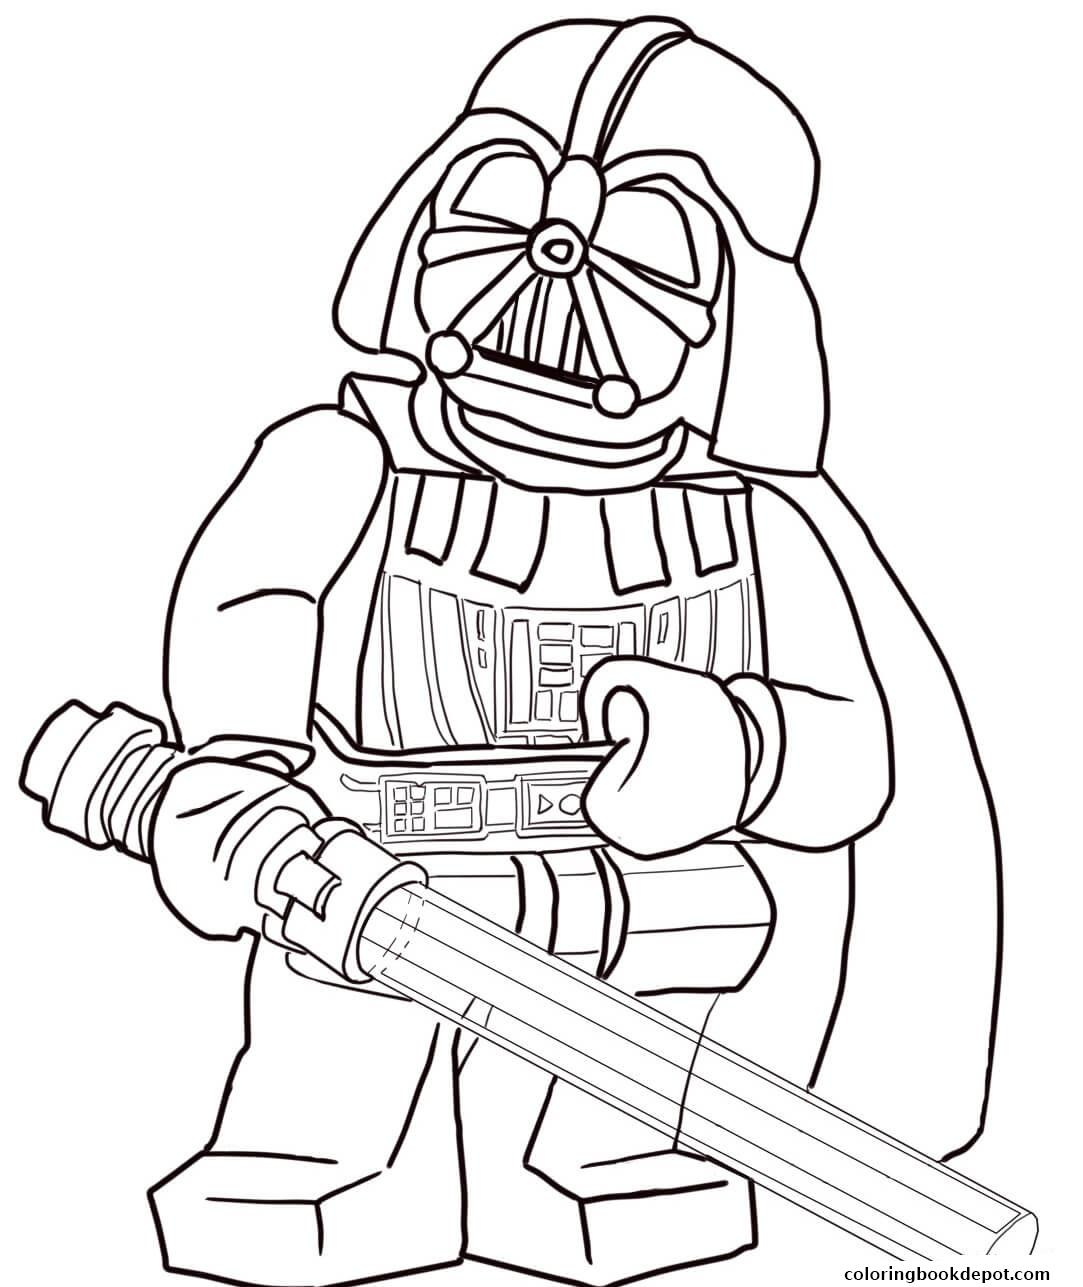 Kleurplaten Van Star Wars Rebels.Star Wars Darth Vader Drawing At Getdrawings Com Free For Personal